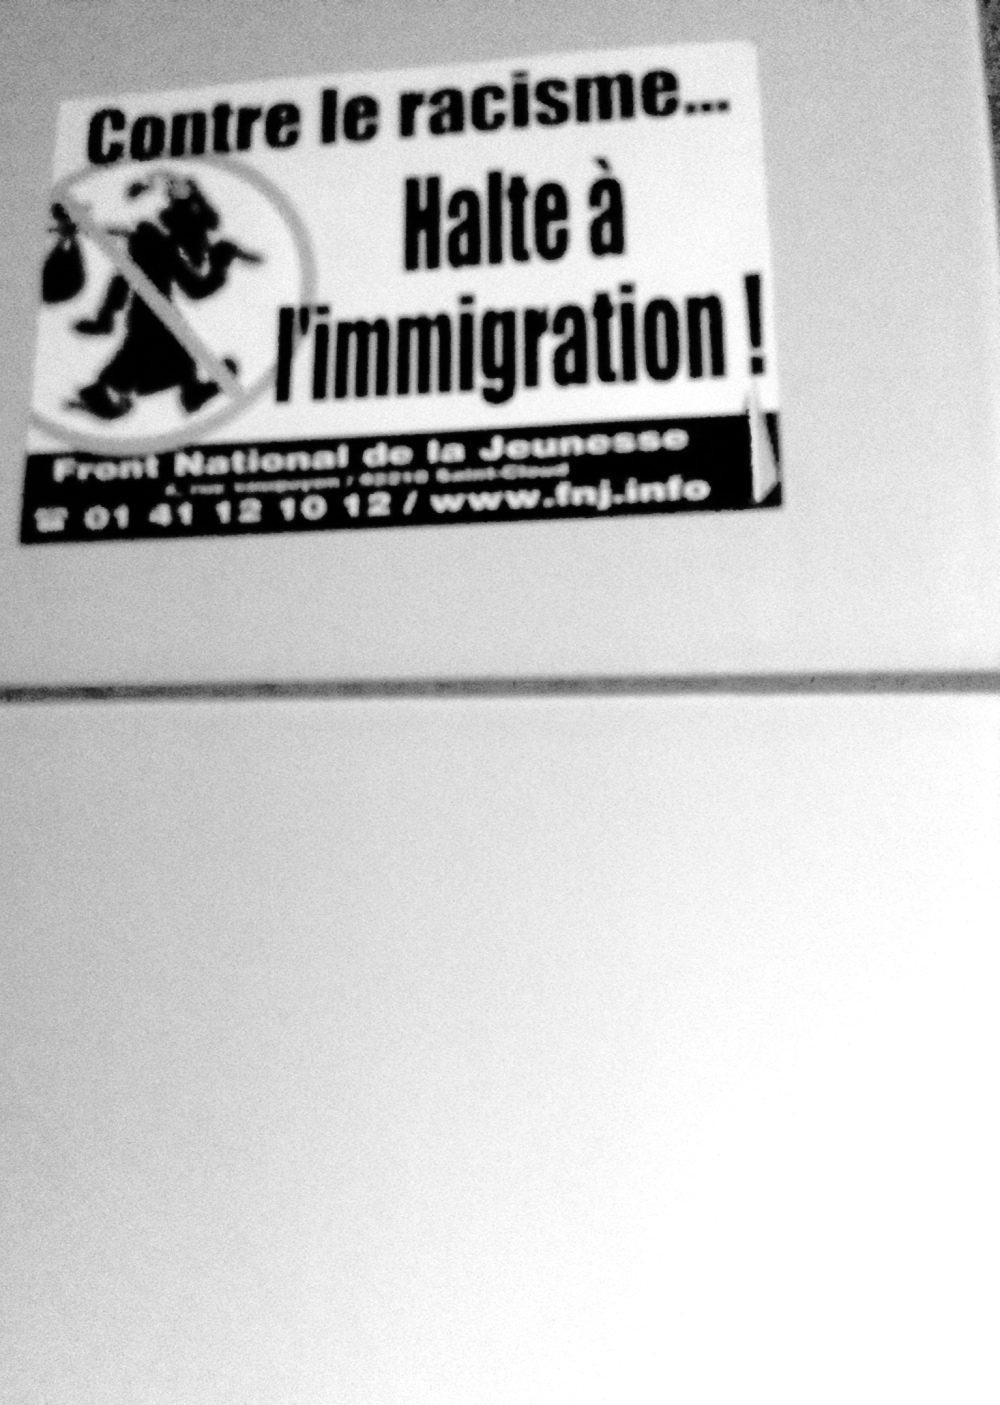 A polite anti-immigrant poster that is careful to note that the poster may look racist but it is not.